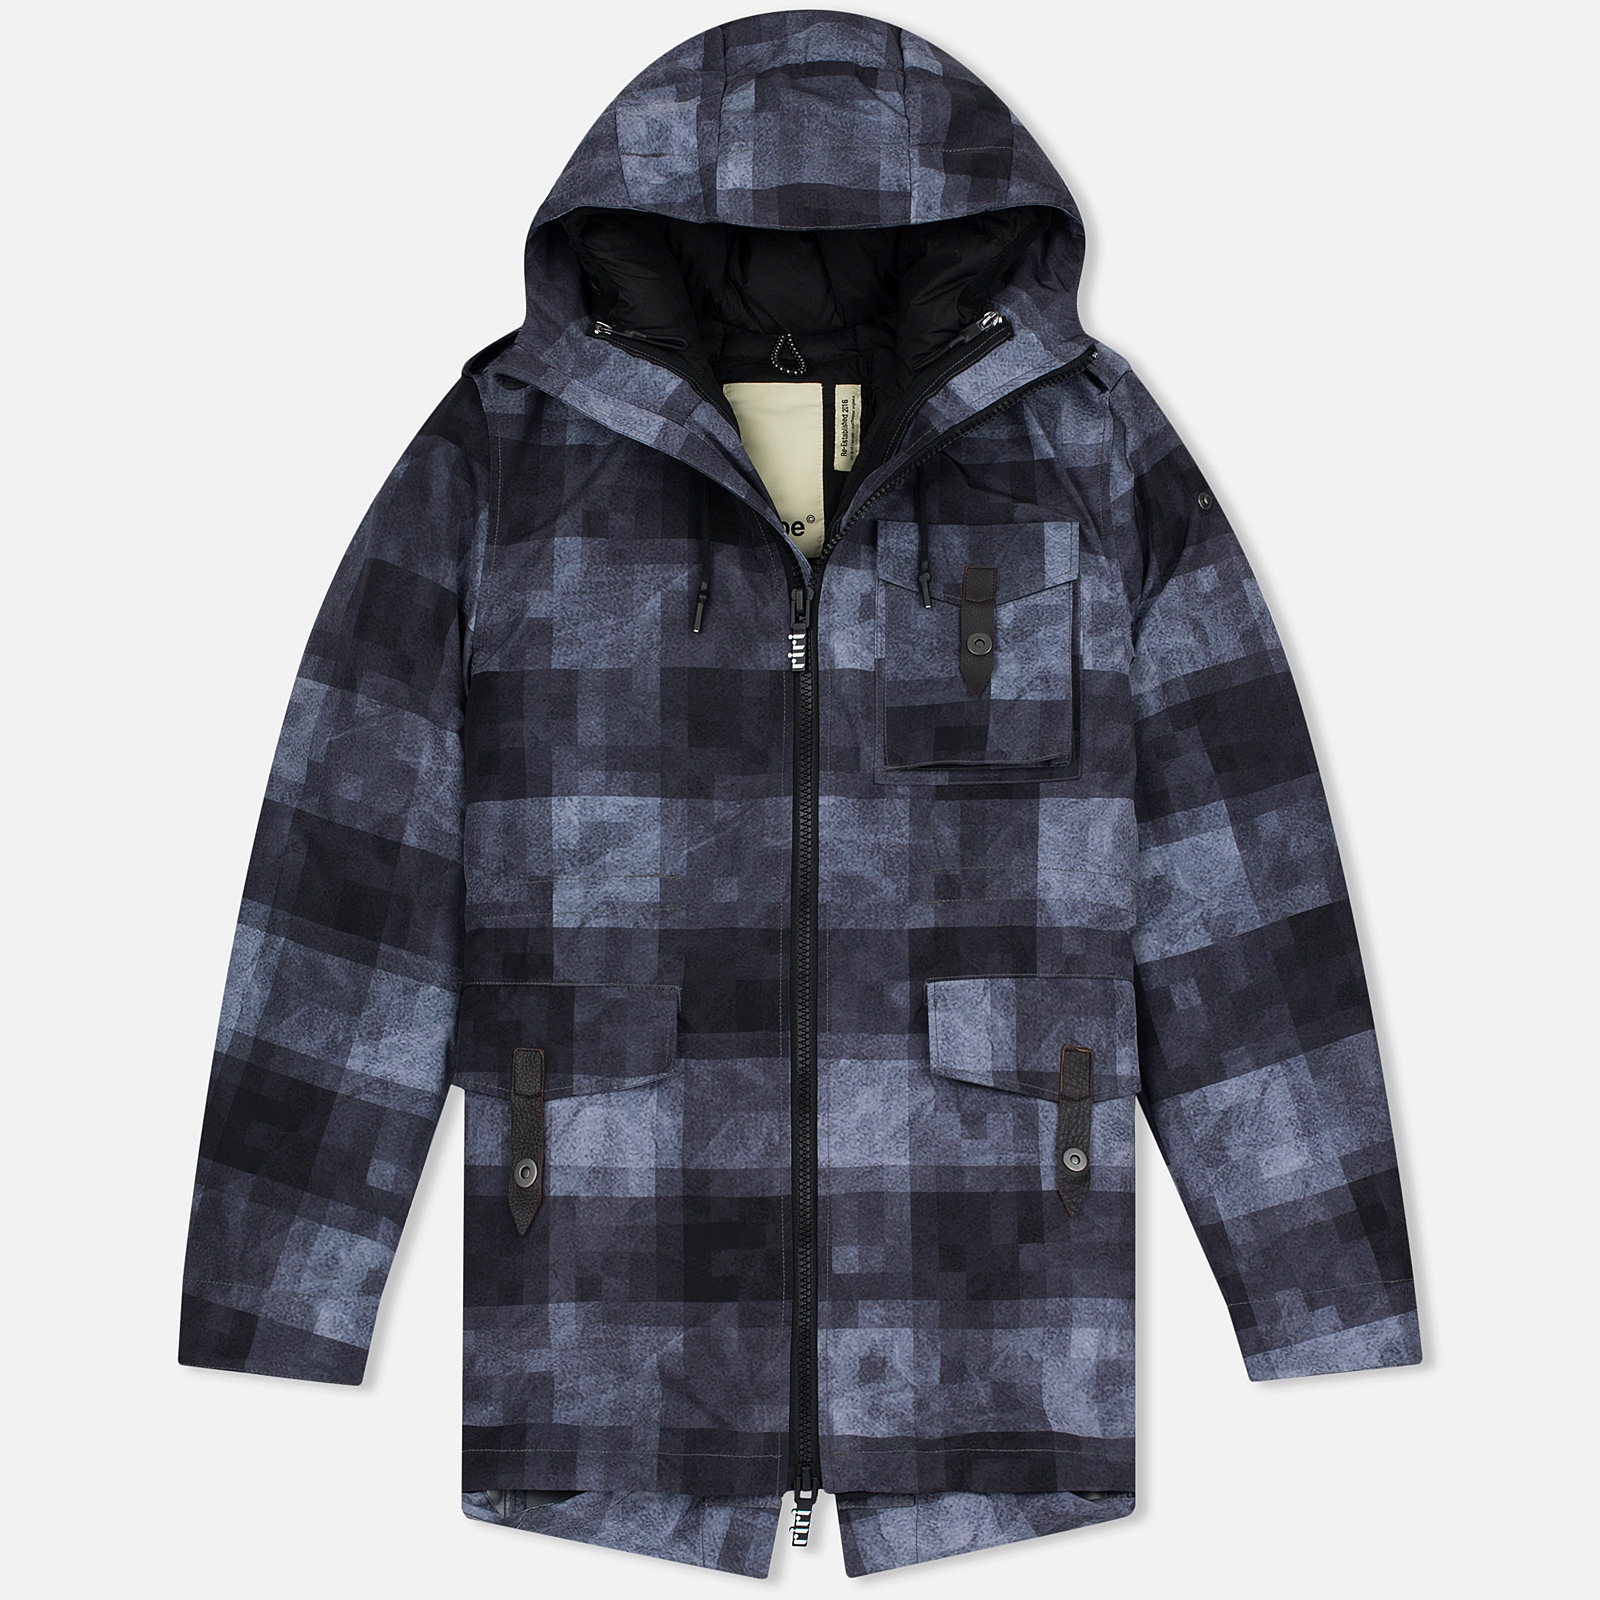 muzhskaya-kurtka-parka-dupe-storm-hooded-3l-trafford-check-black-black-cross-panel-print-1-1_1600x1600